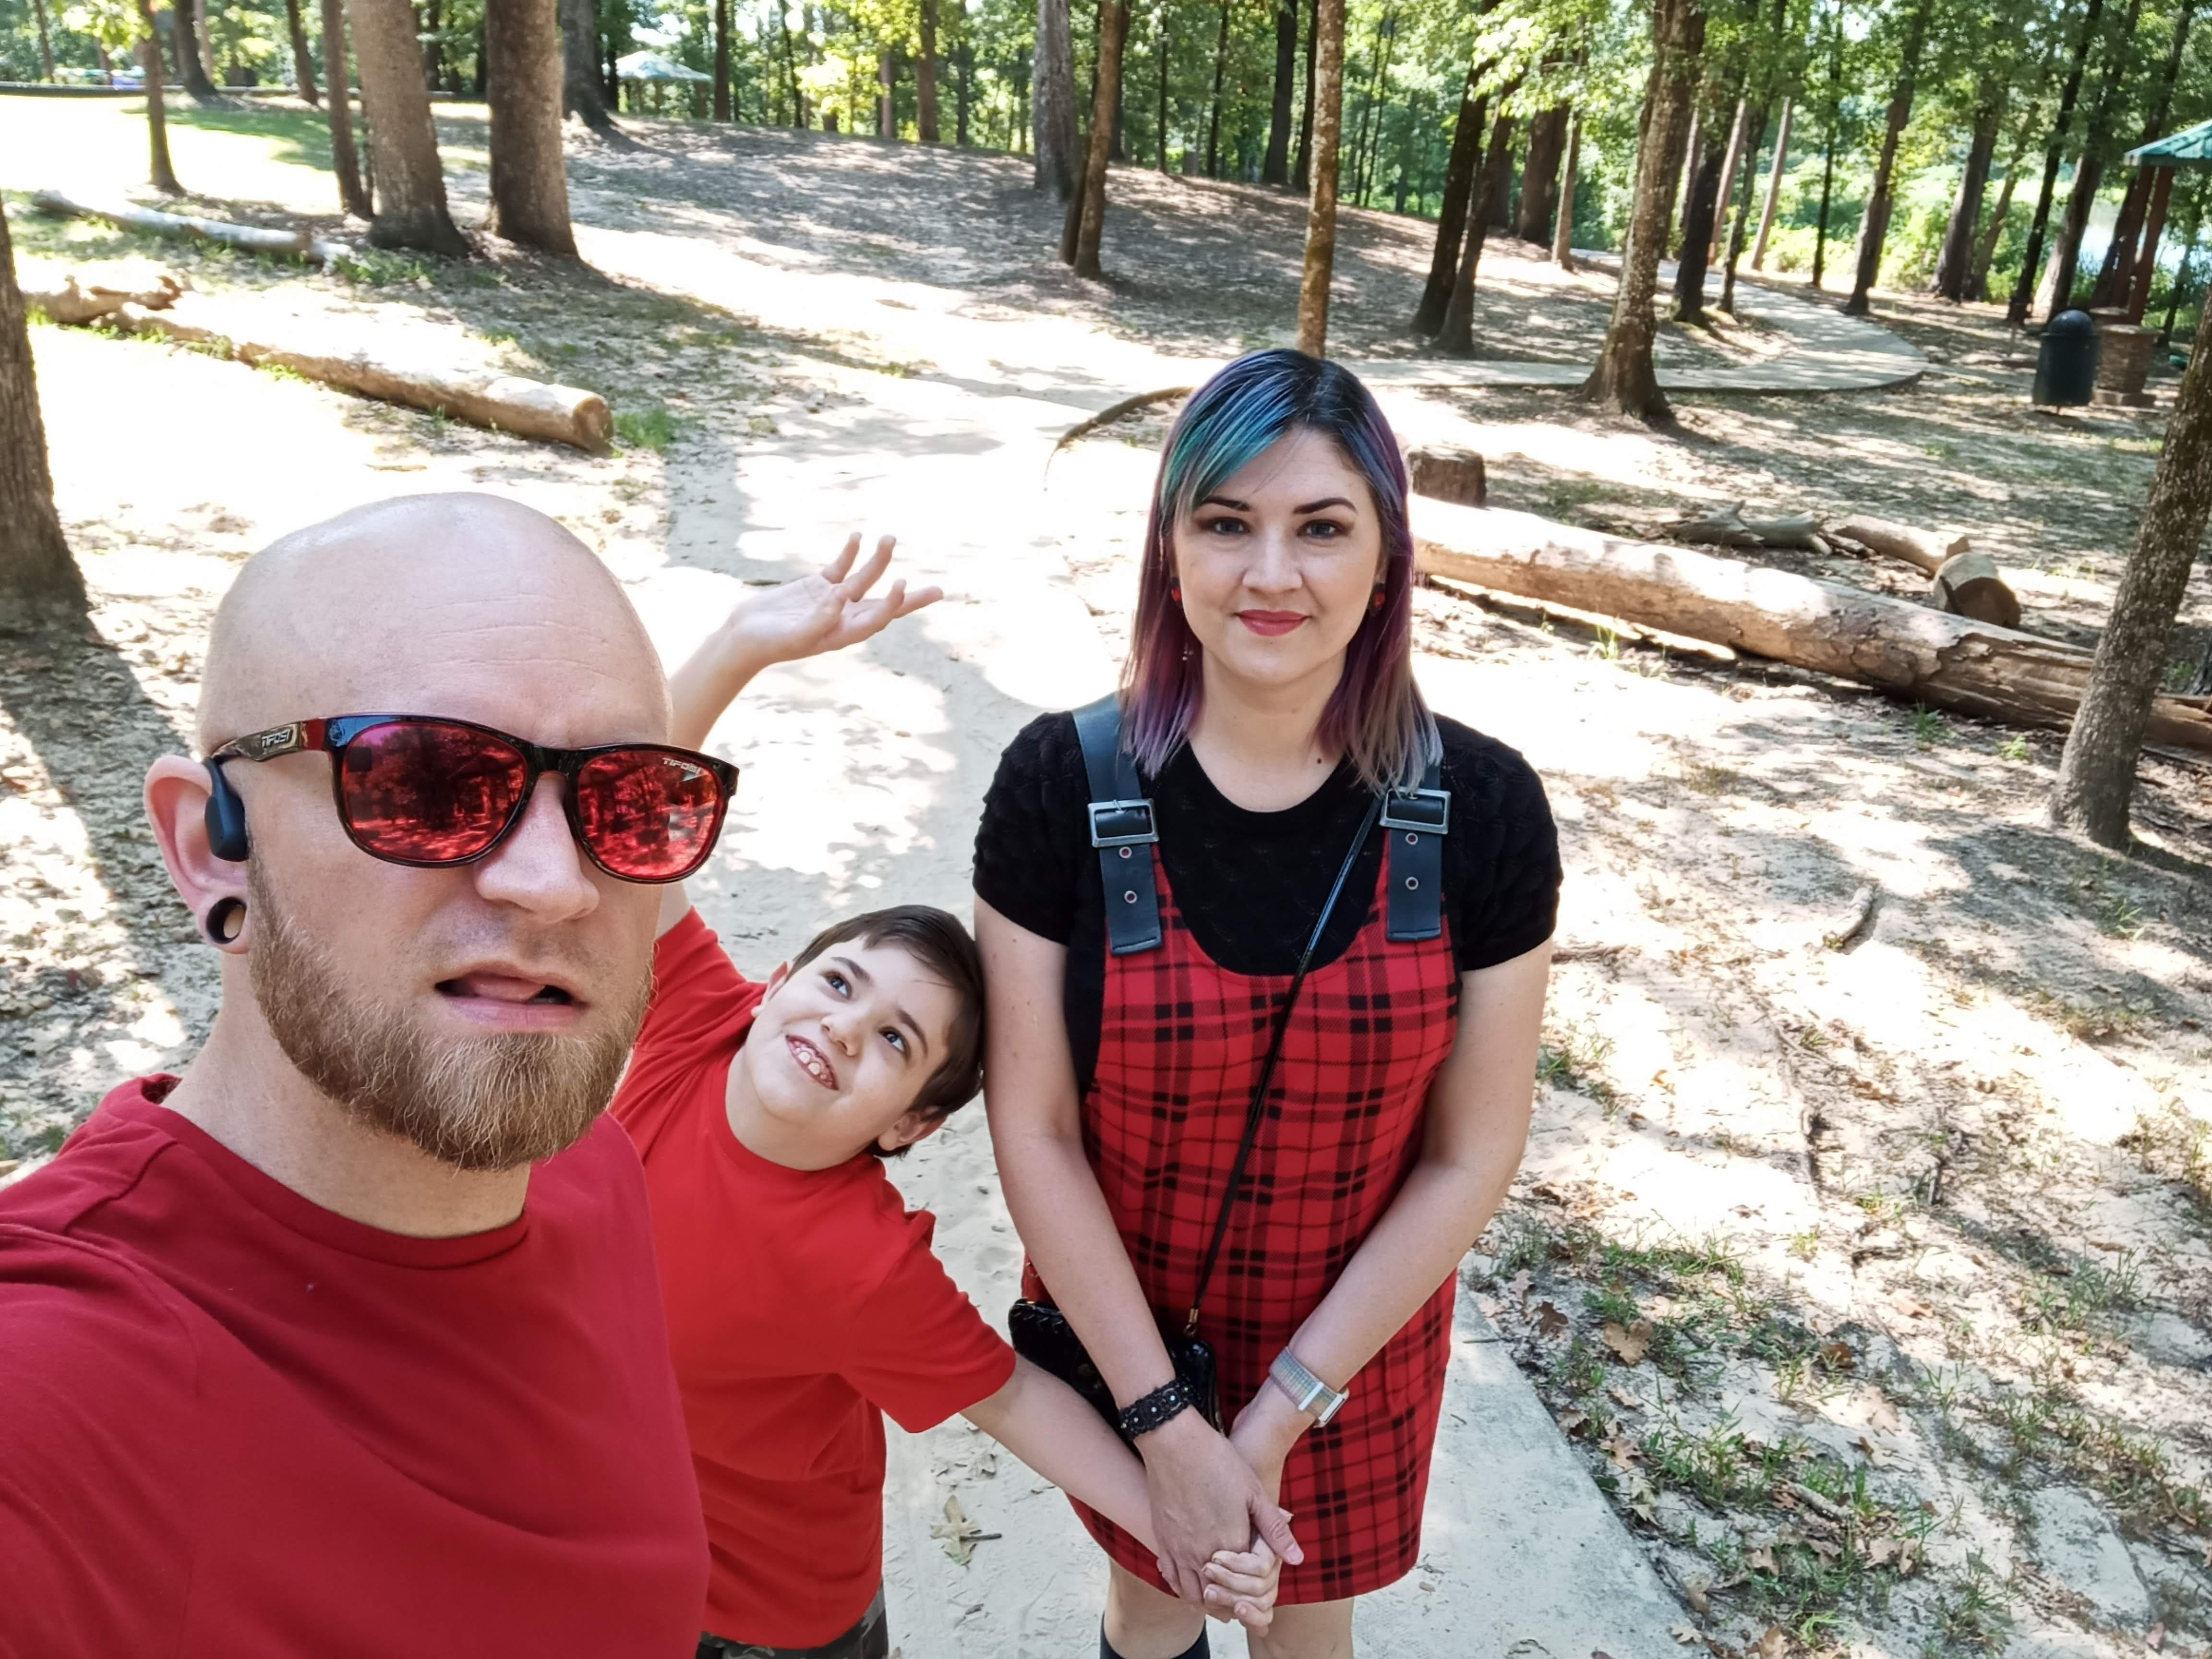 BLU G91 Pro front camera sample: a group selfie with my family